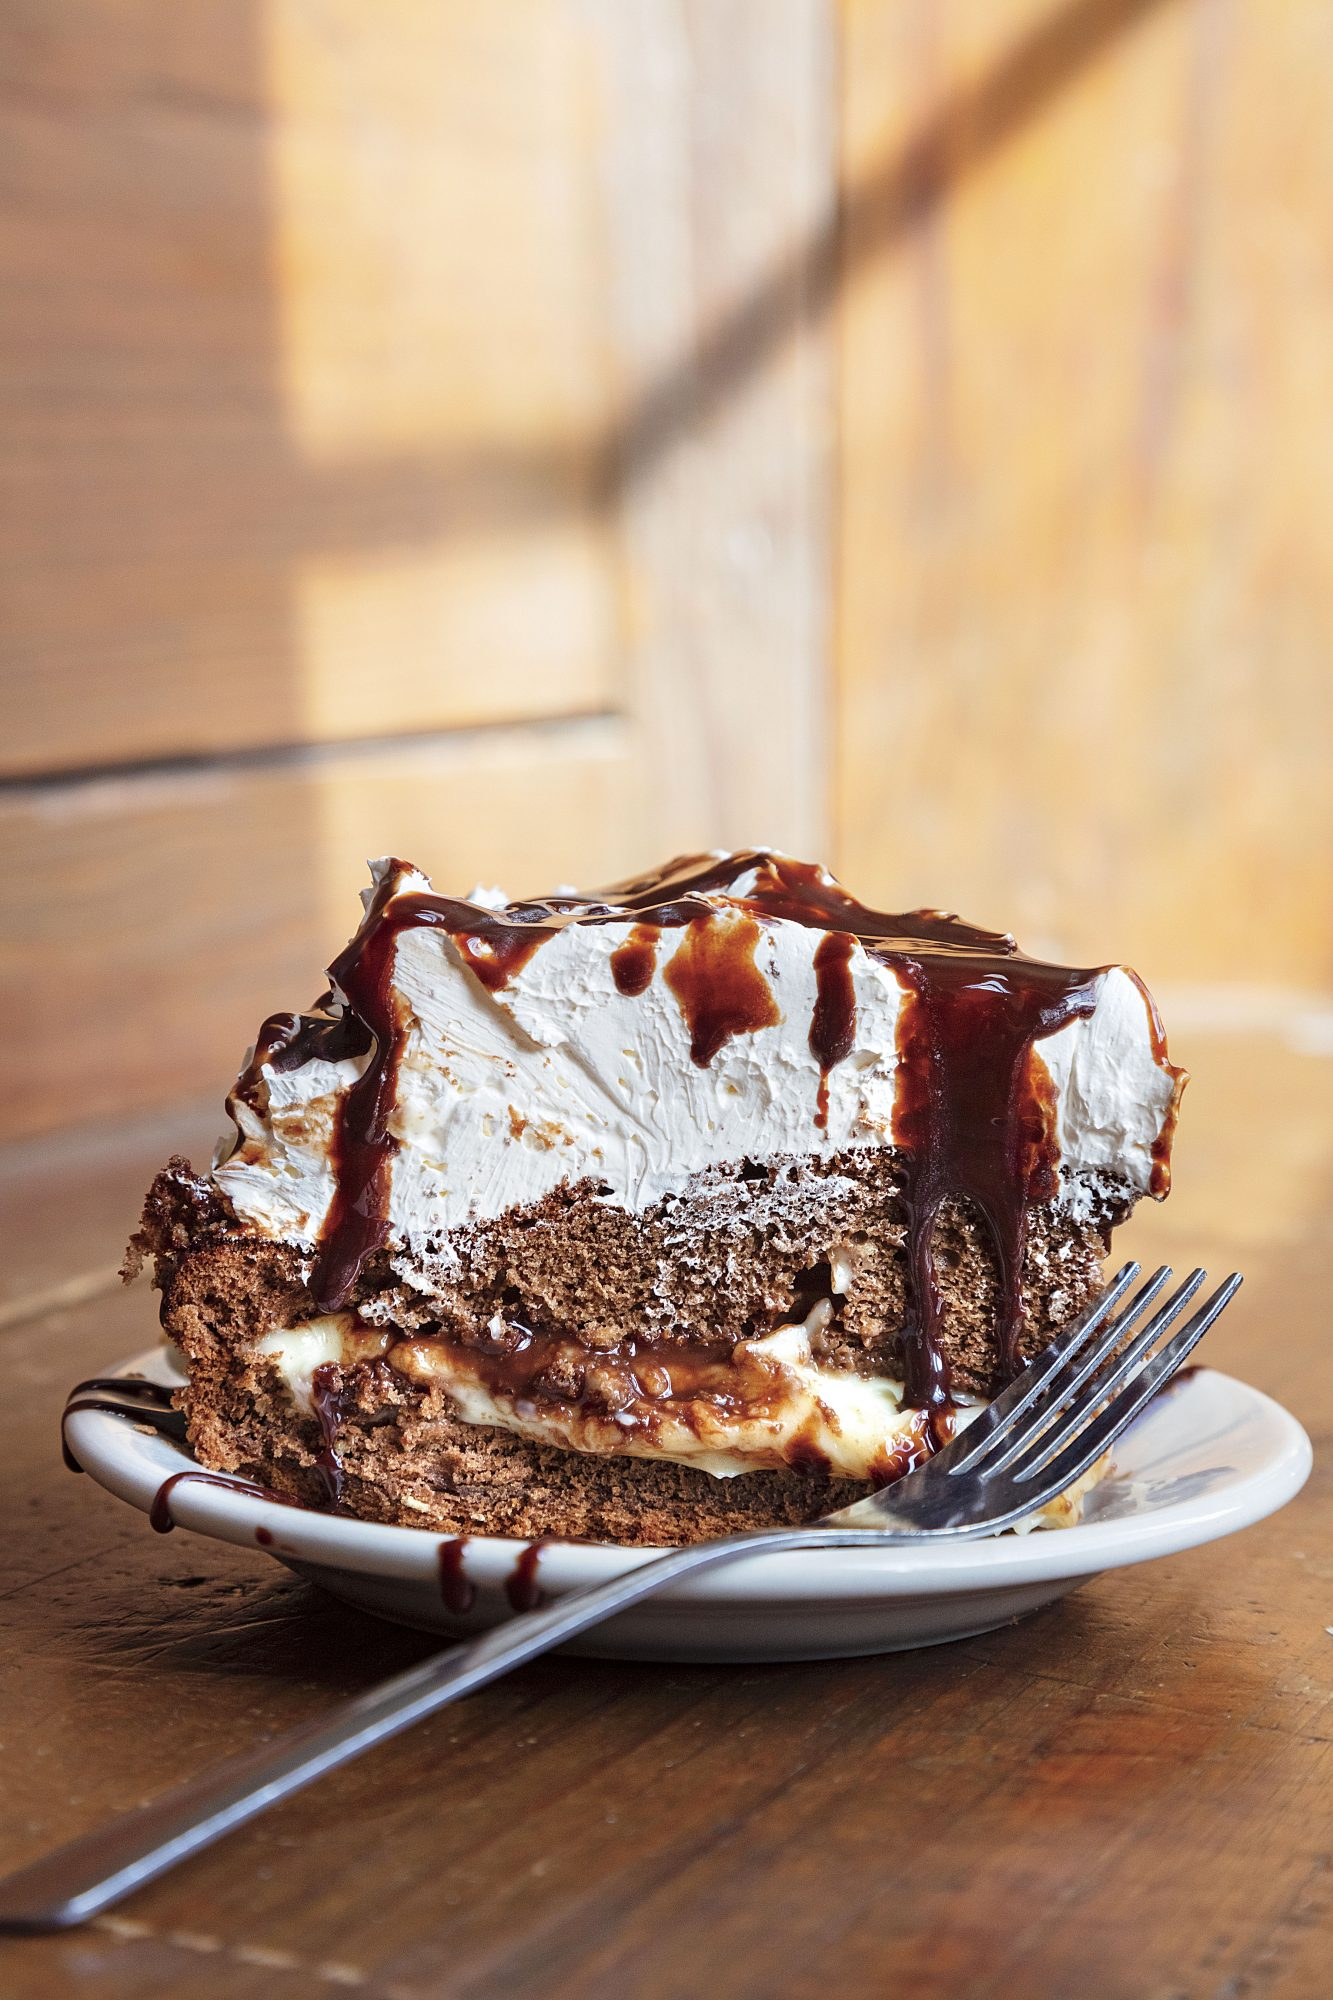 Cane River Commissary Cream Pie in Natchitoches, LA